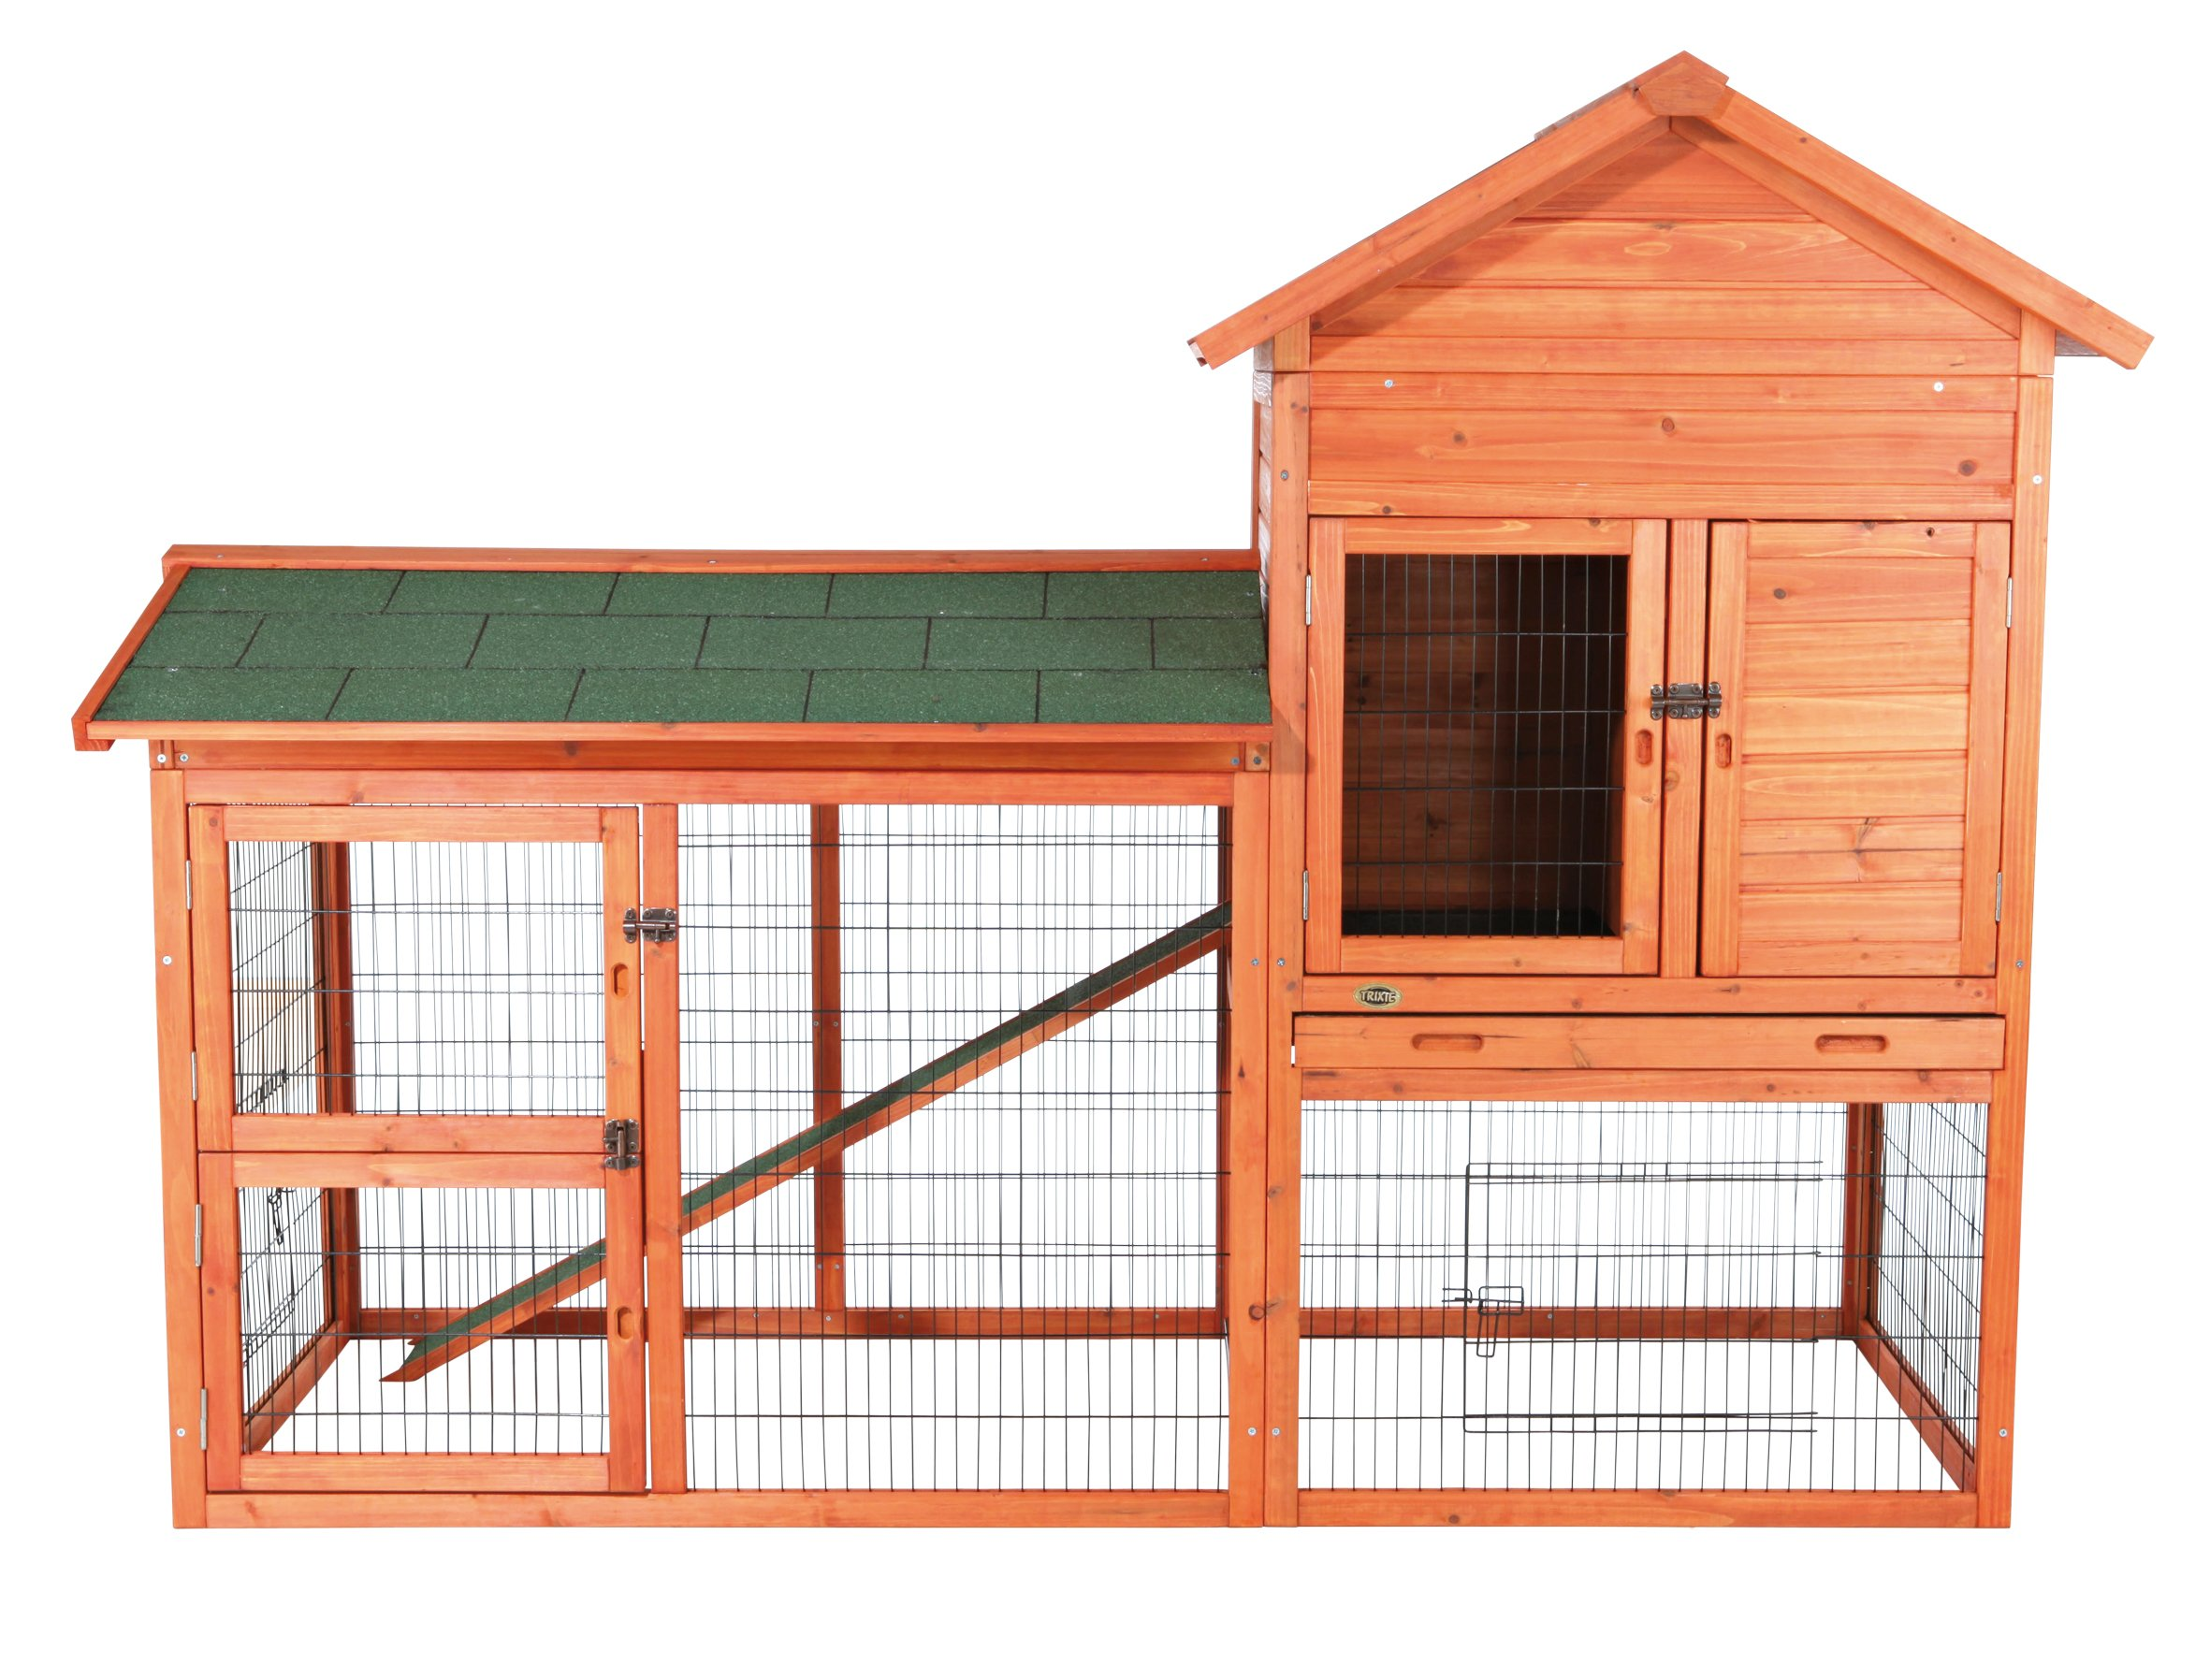 TRIXIE Pet Products Rabbit Hutch with Outdoor Run, 78.25 x 36.5 x 57.25 inches by Trixie